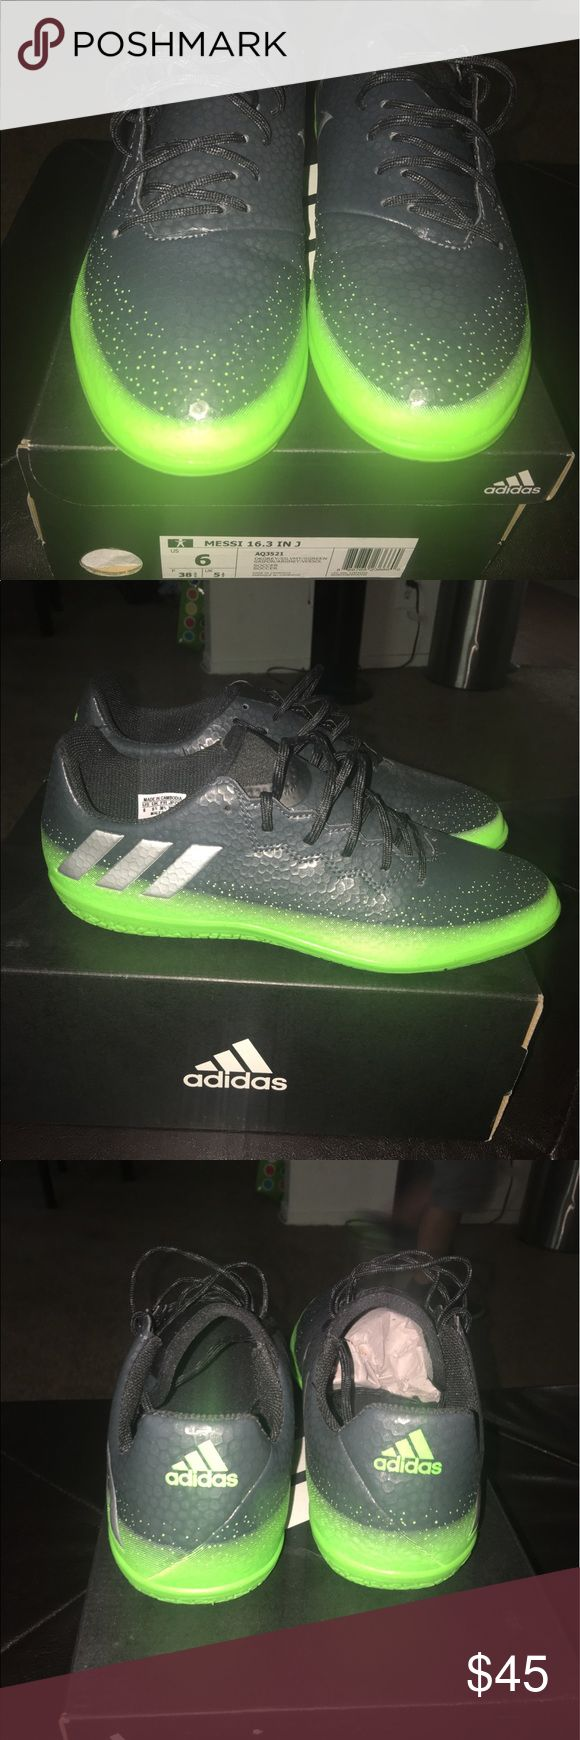 Indoor soccer shoes 🚨SOLD🚨 Adidas indoor soccer shoes named after the famous soccer player MESSI they are in great condition only worn once. Size 6y adidas Shoes Sneakers